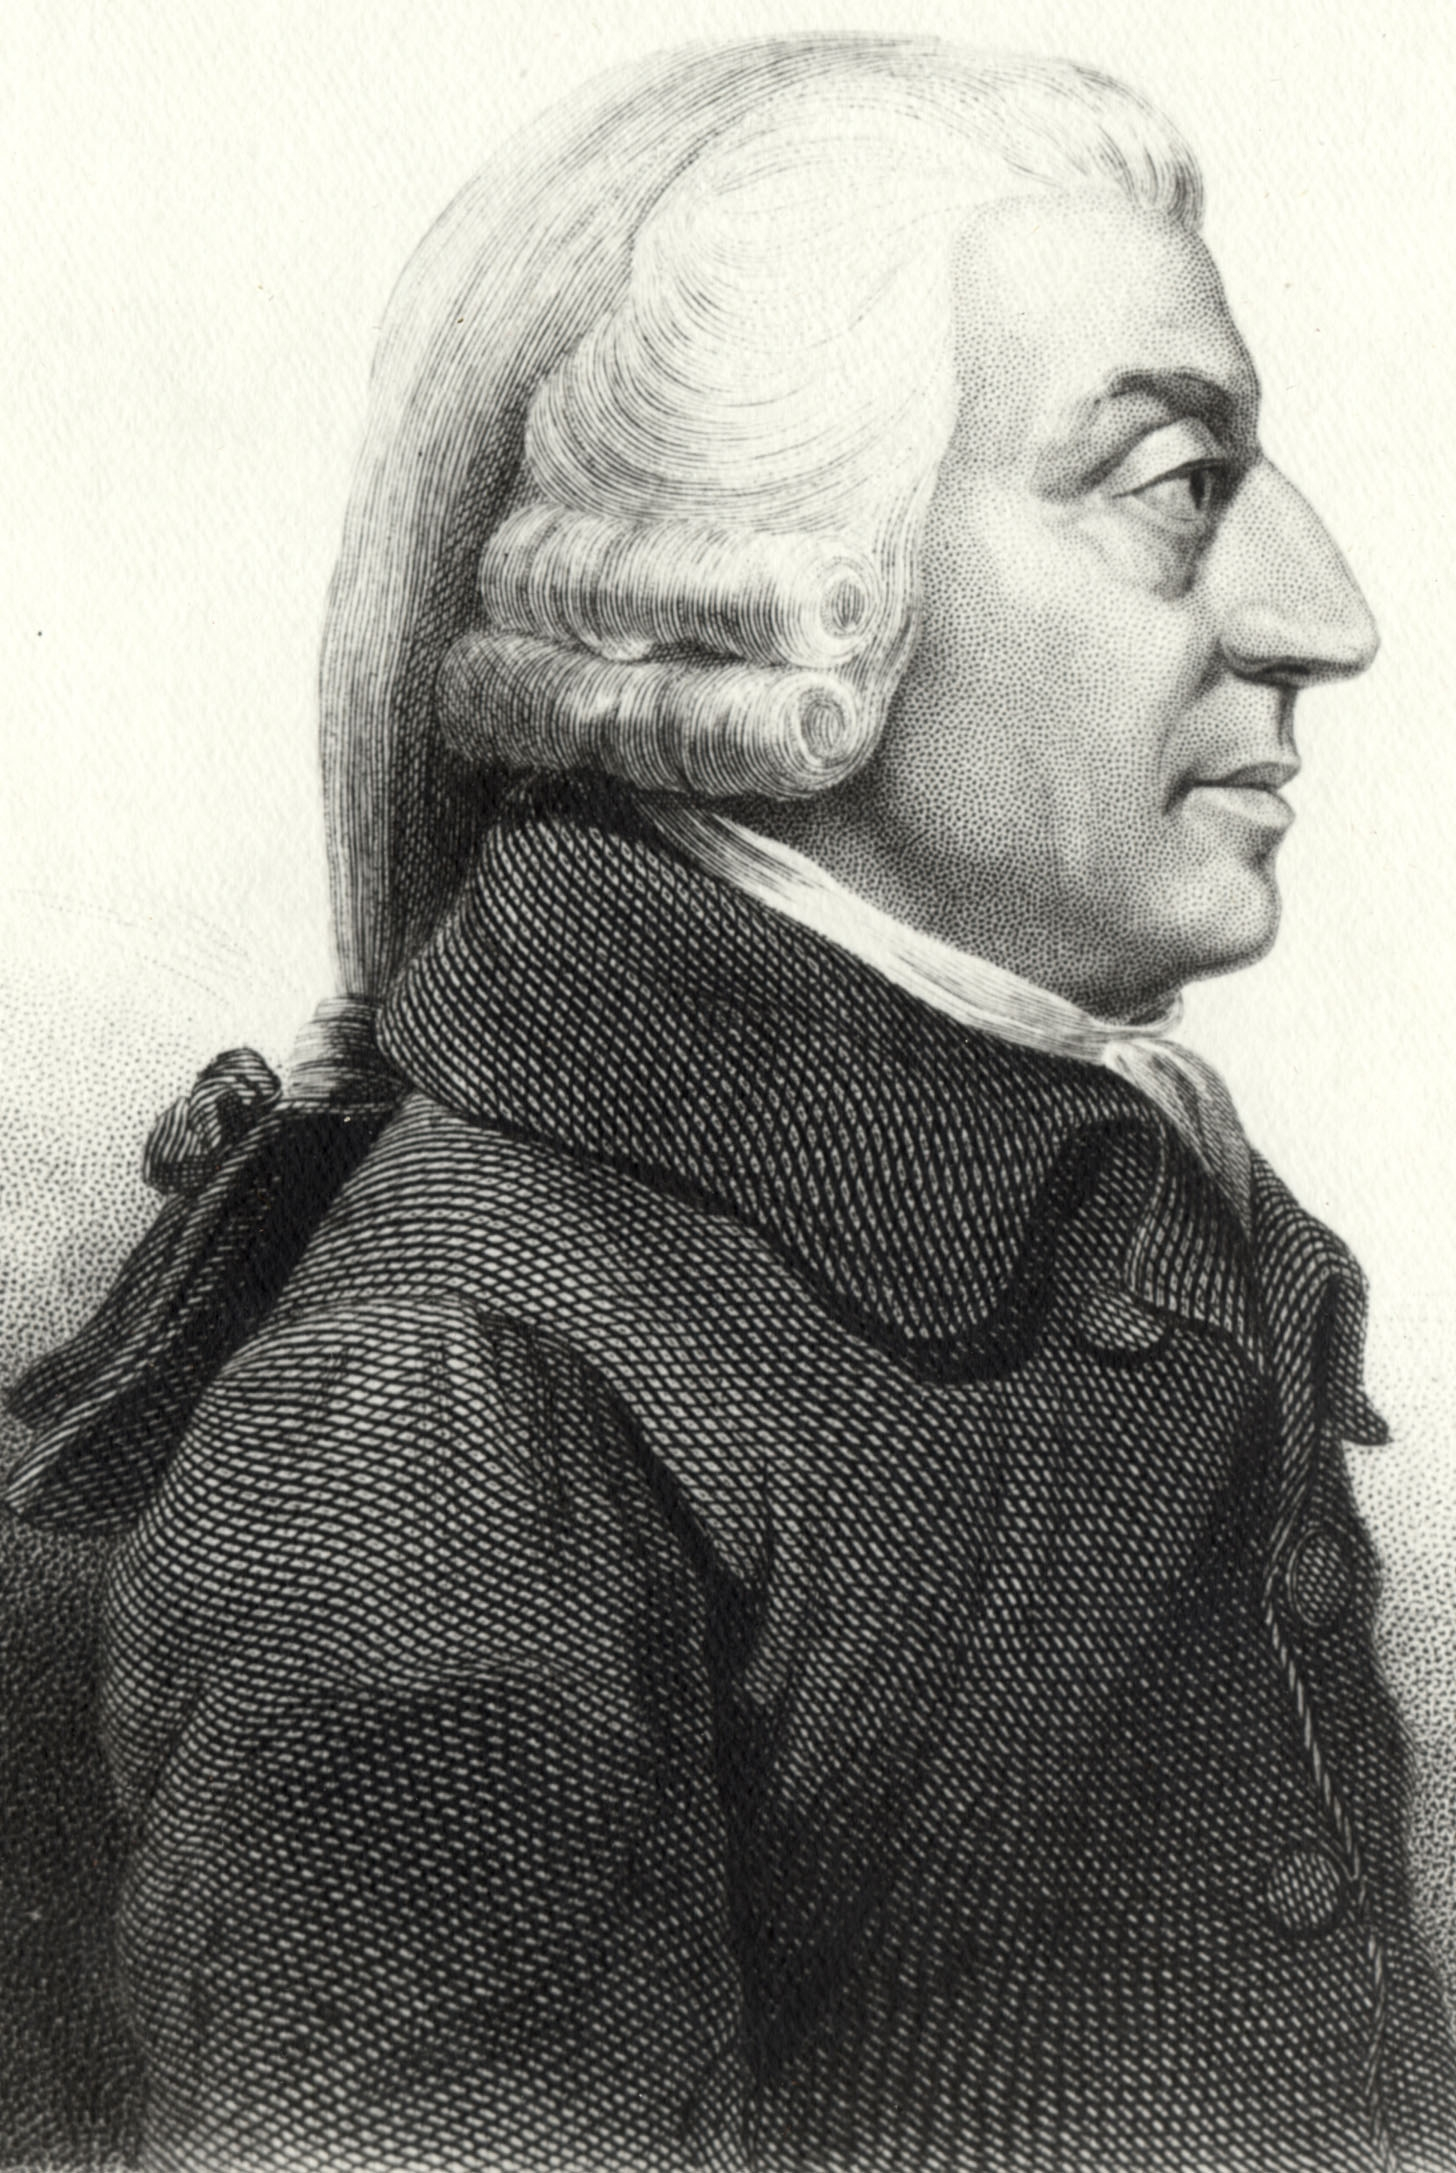 One leader of the Scottish Enlightenment was Adam Smith, the father of modern economic science.